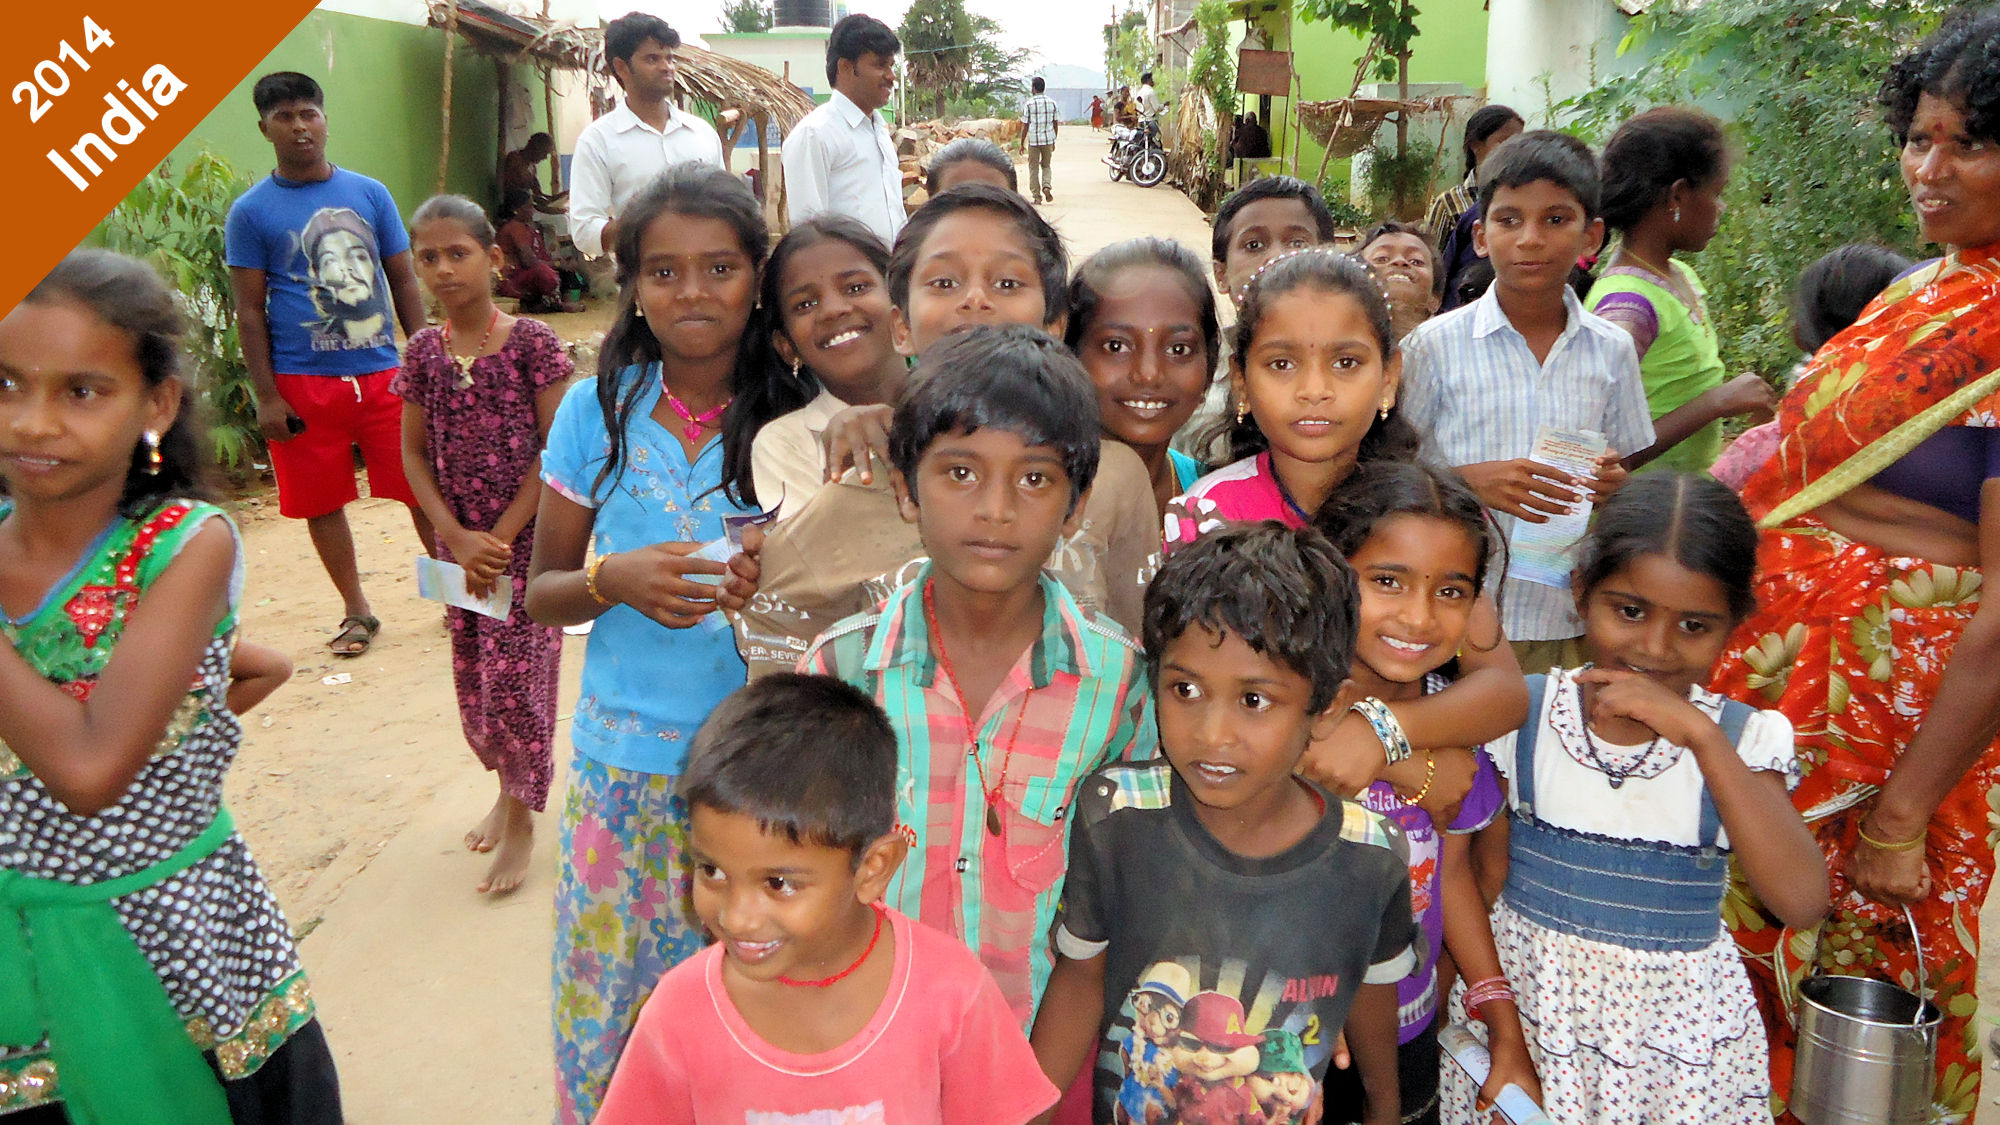 Children in India